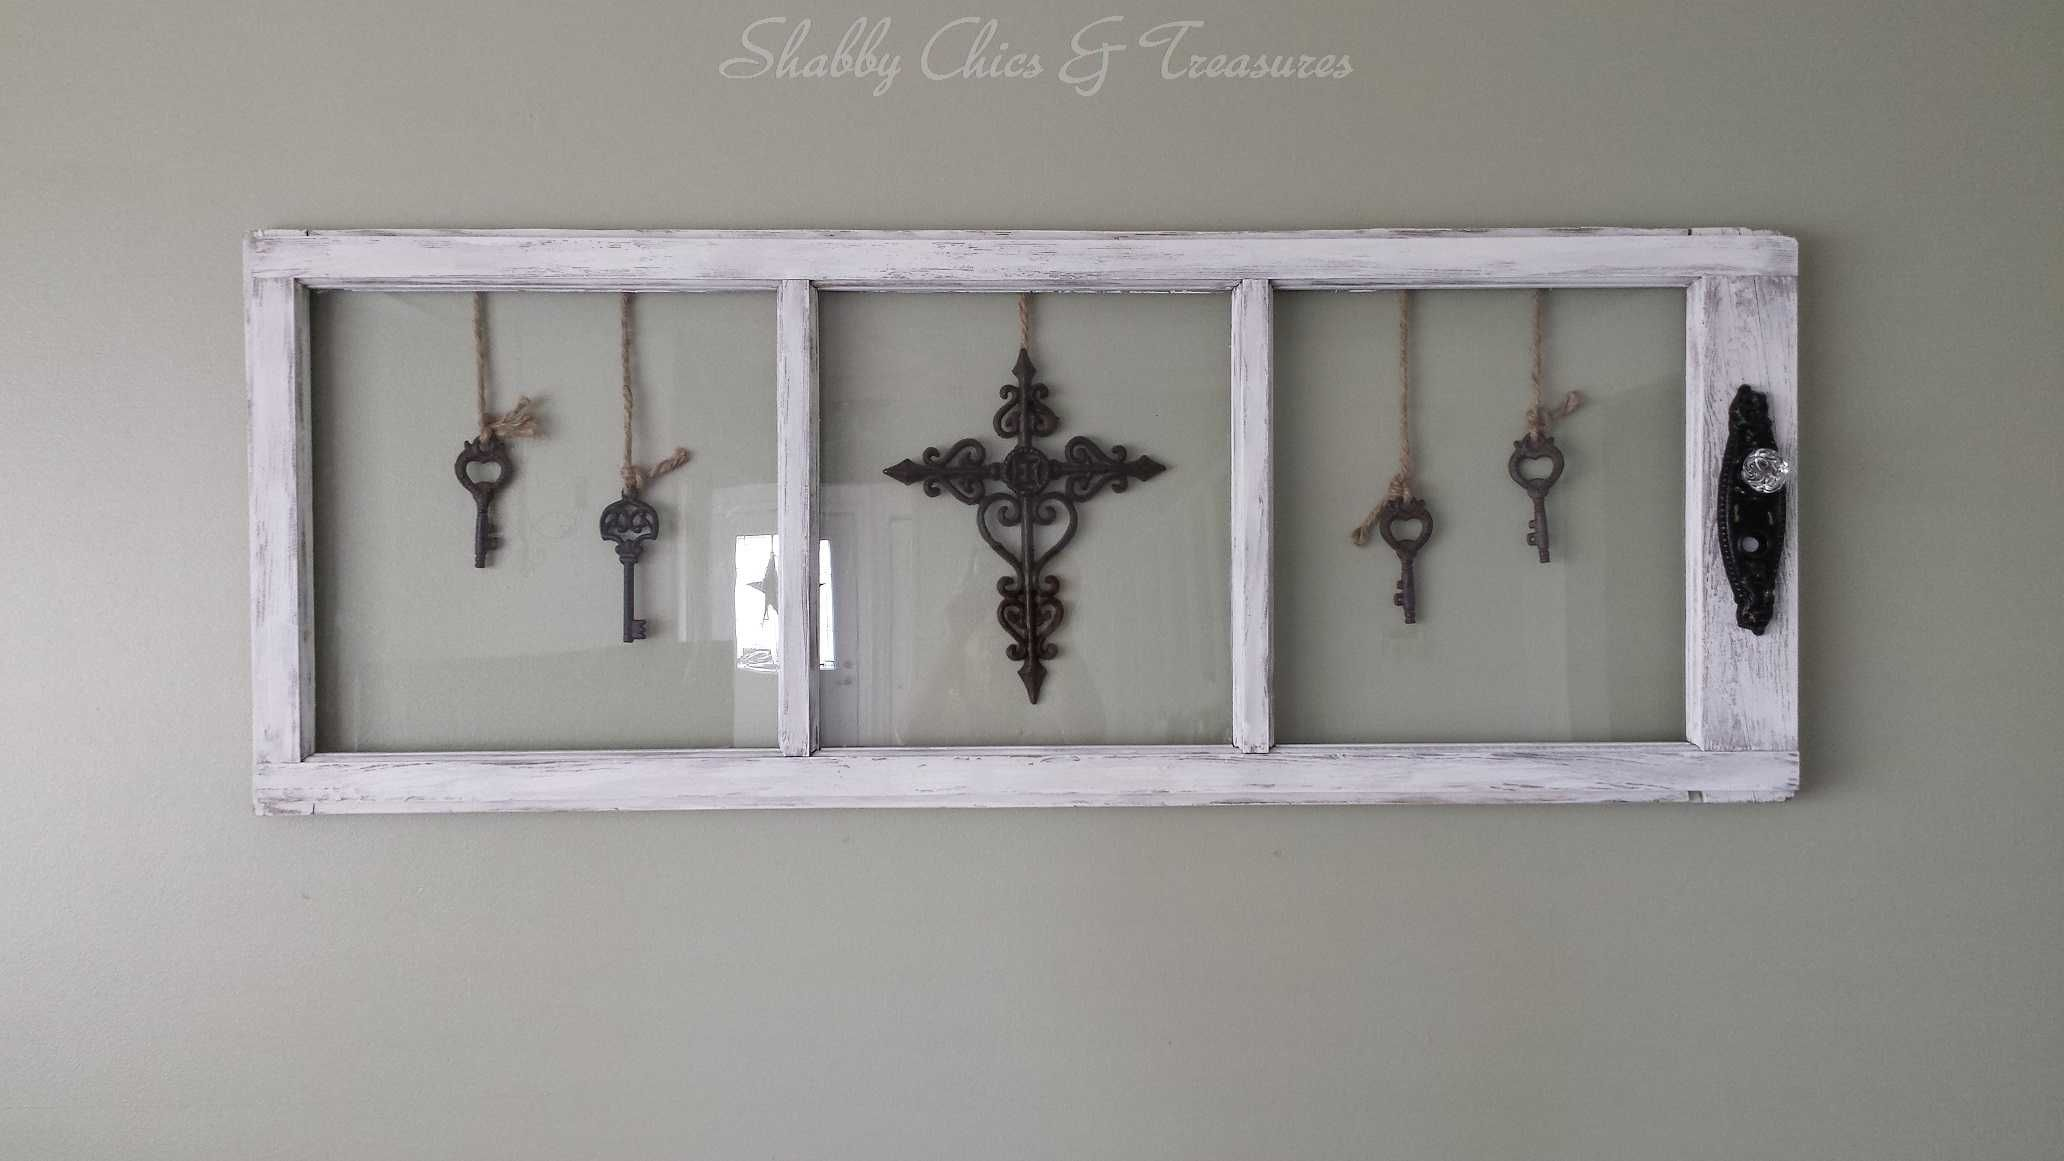 I loved the shape of this antique window however wanted a different